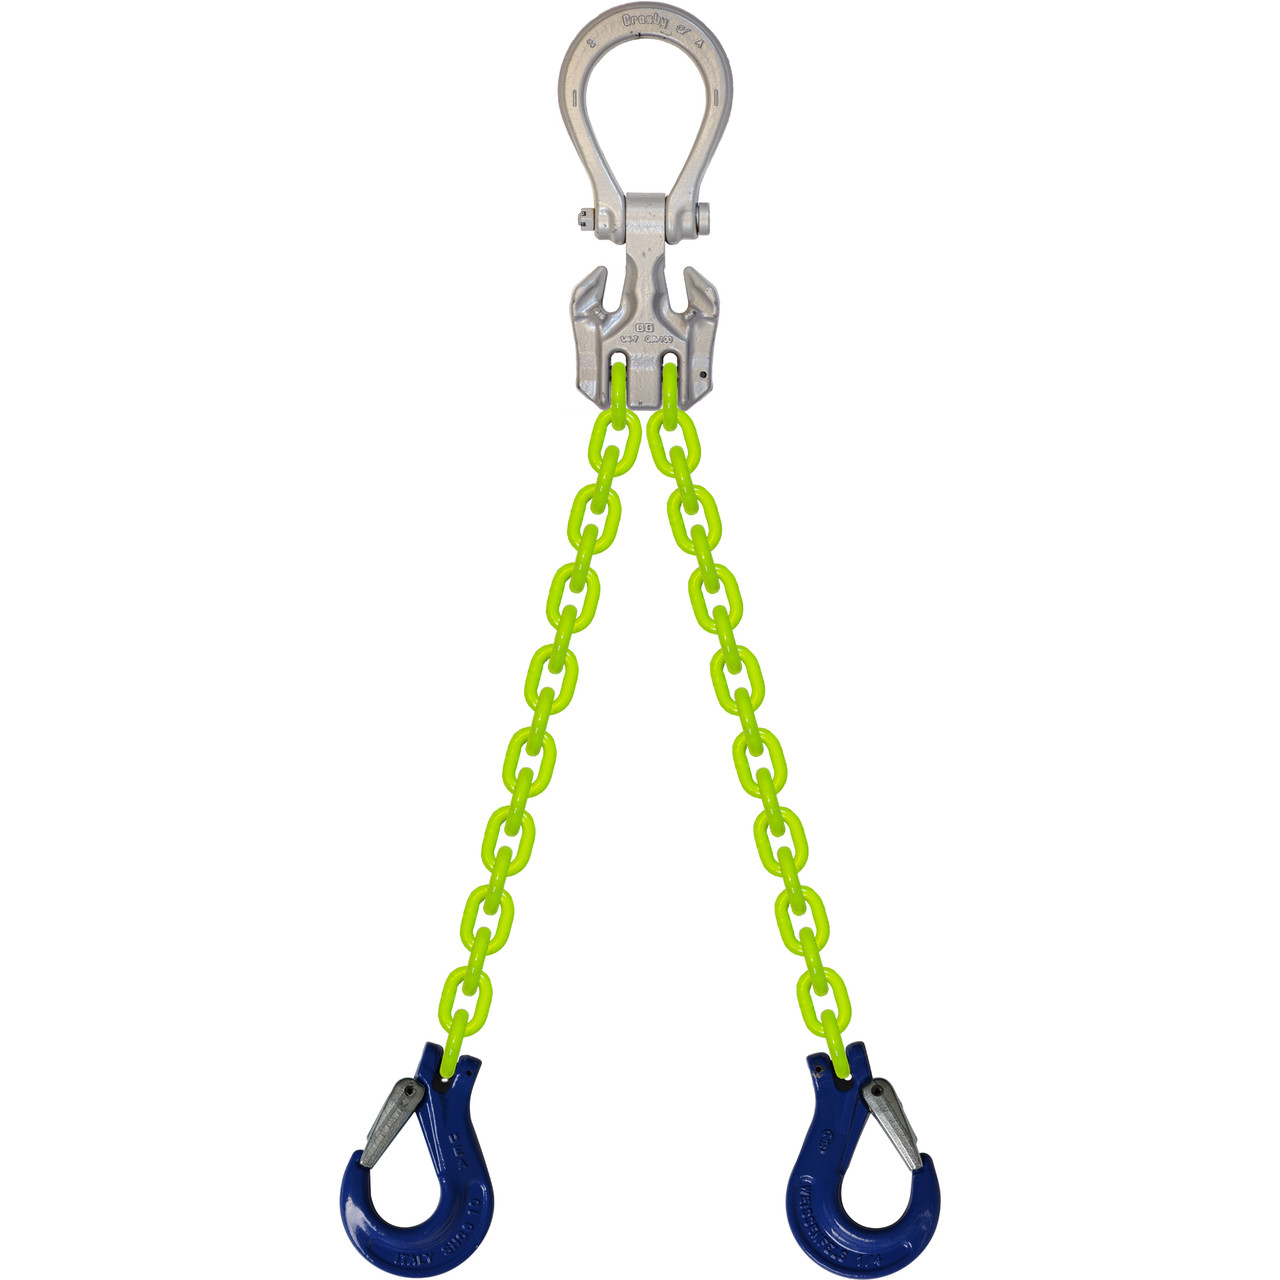 EDOS High Visibility Alloy Chain Sling by all-Aloy a Western Sling Company Brand